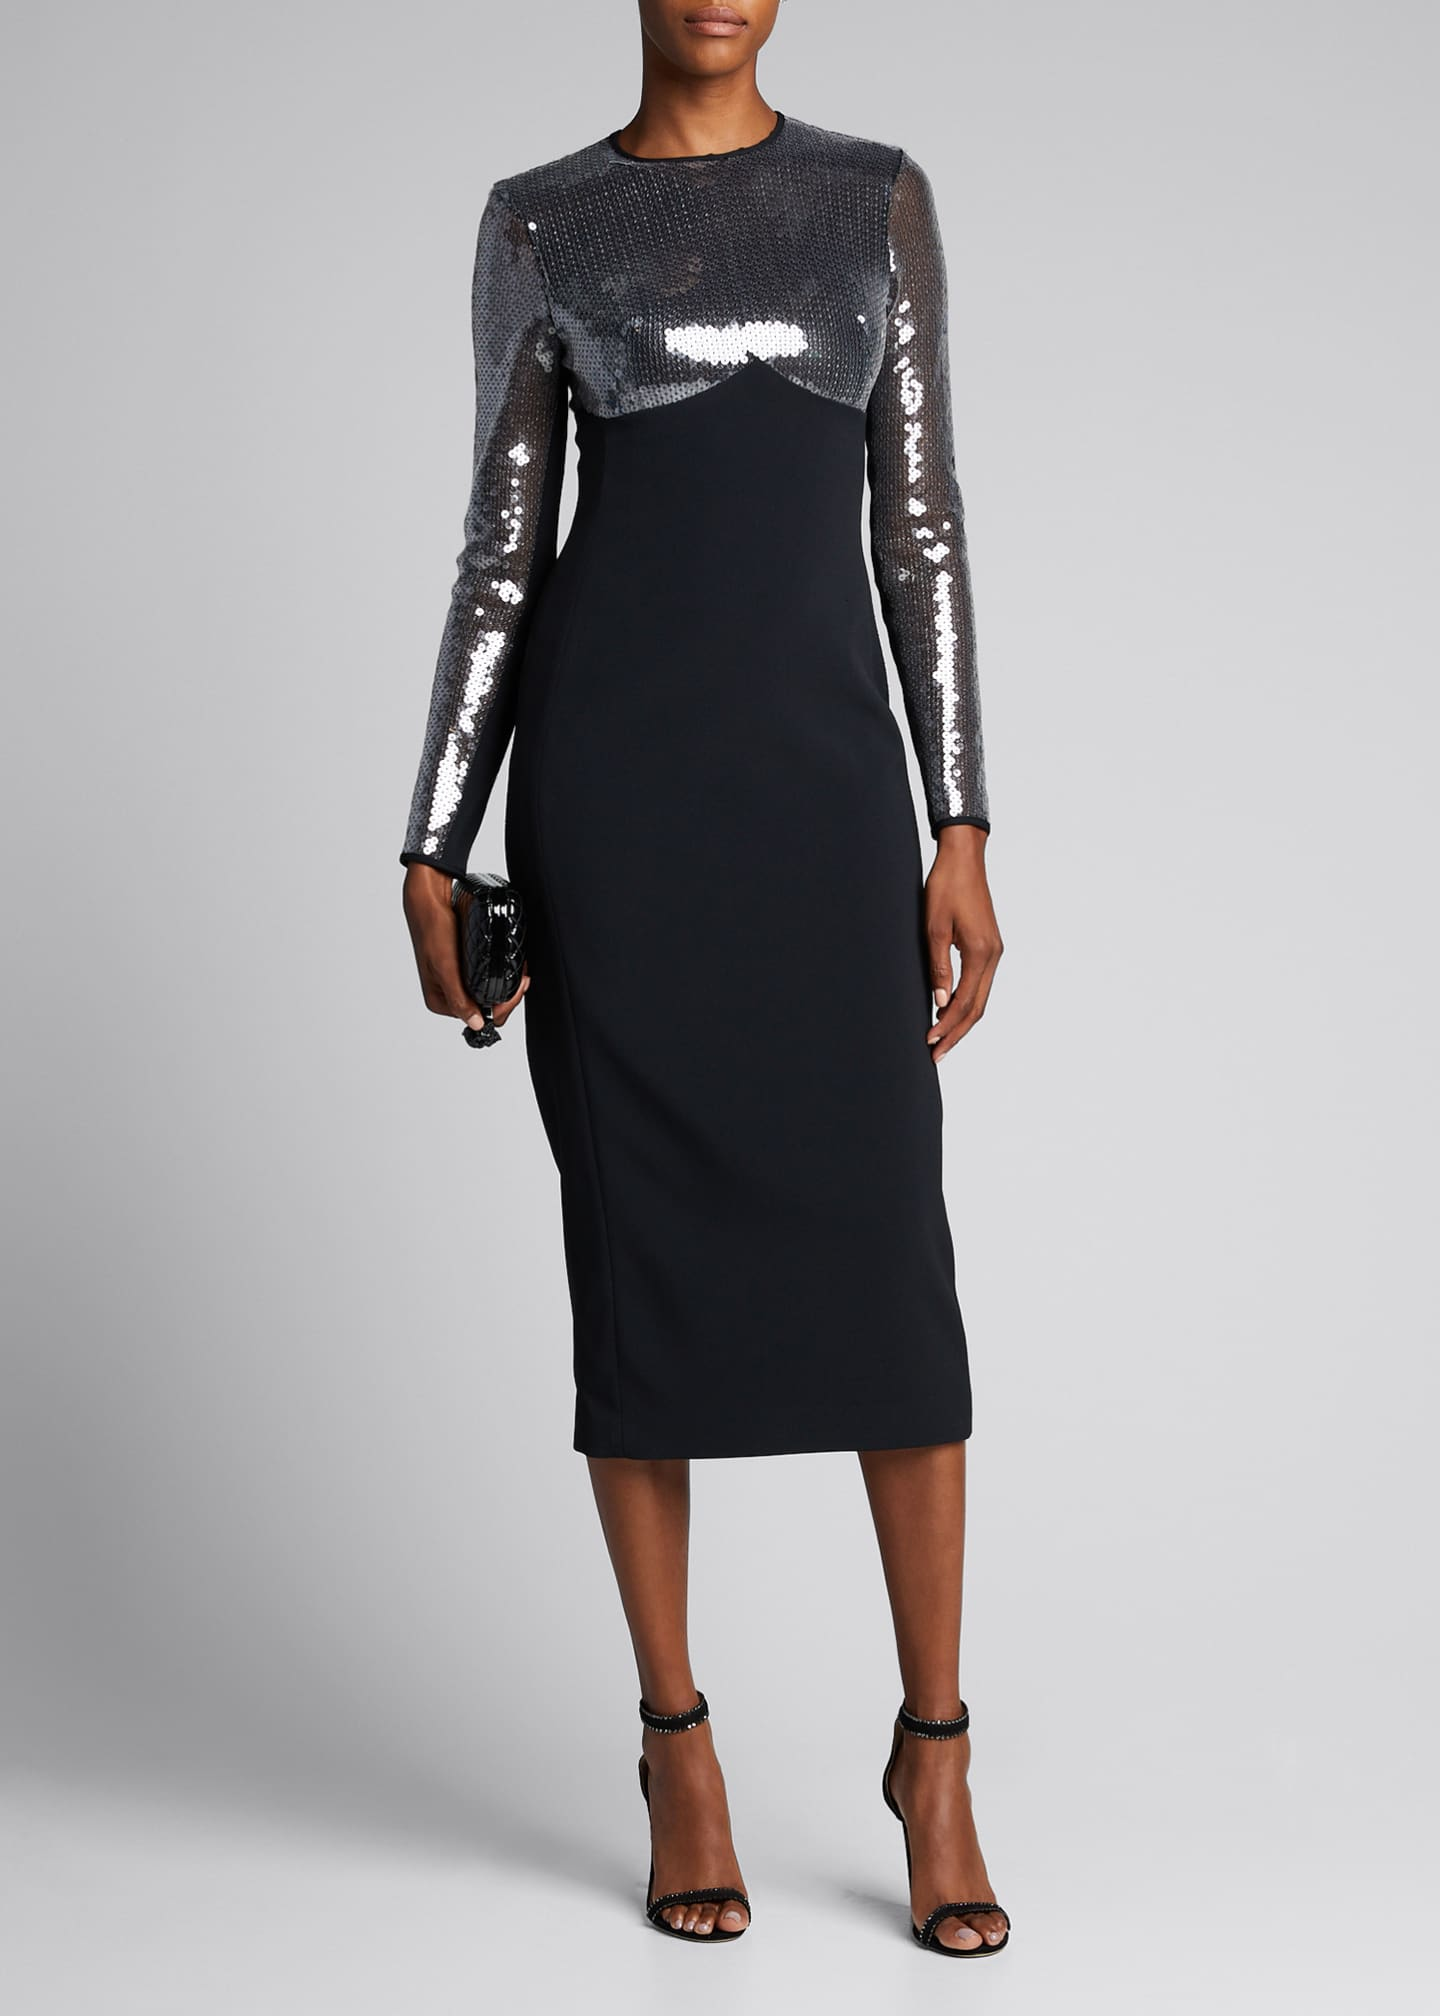 David Koma Cady Sequined-Sleeve Dress